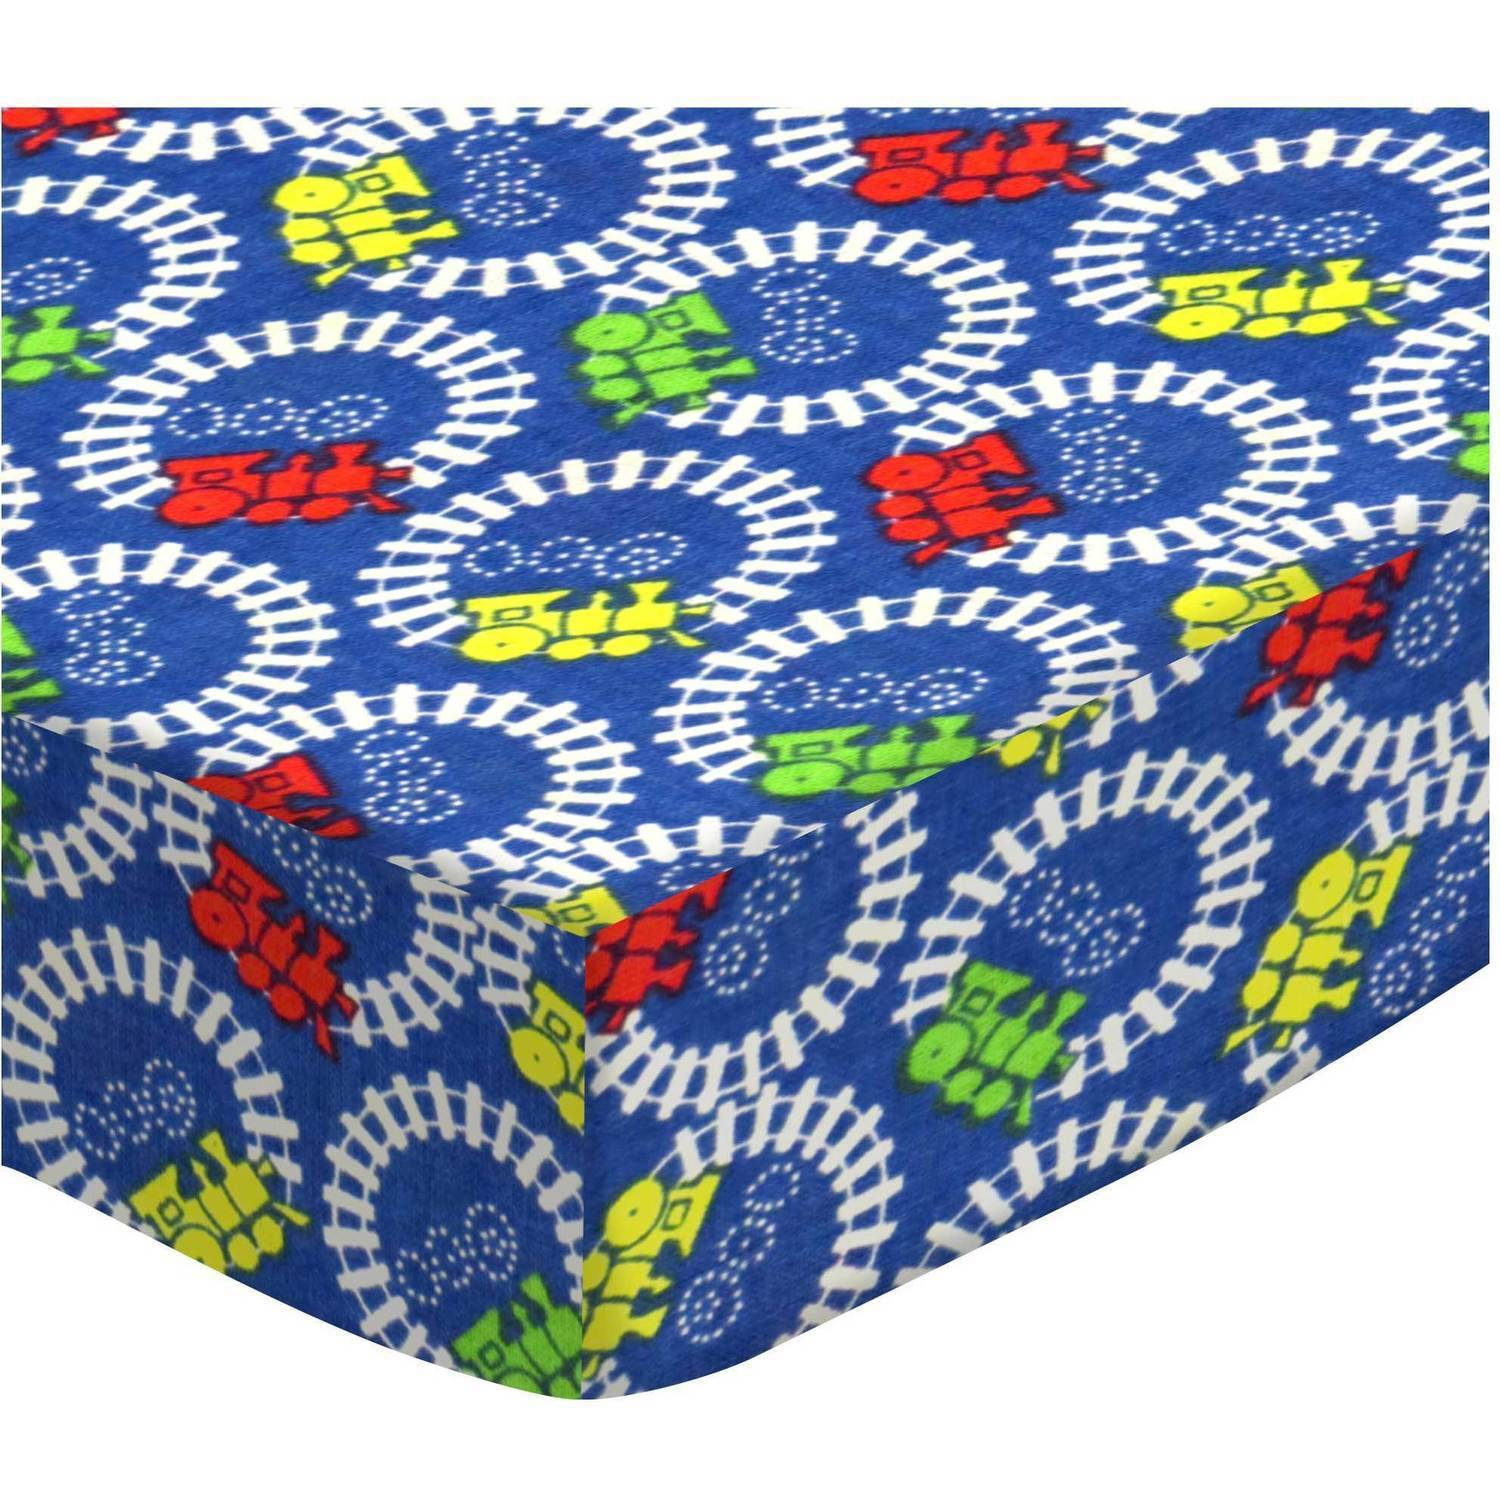 SheetWorld Fitted Pack N Play (Graco Square Playard) Sheet - Train Tracks